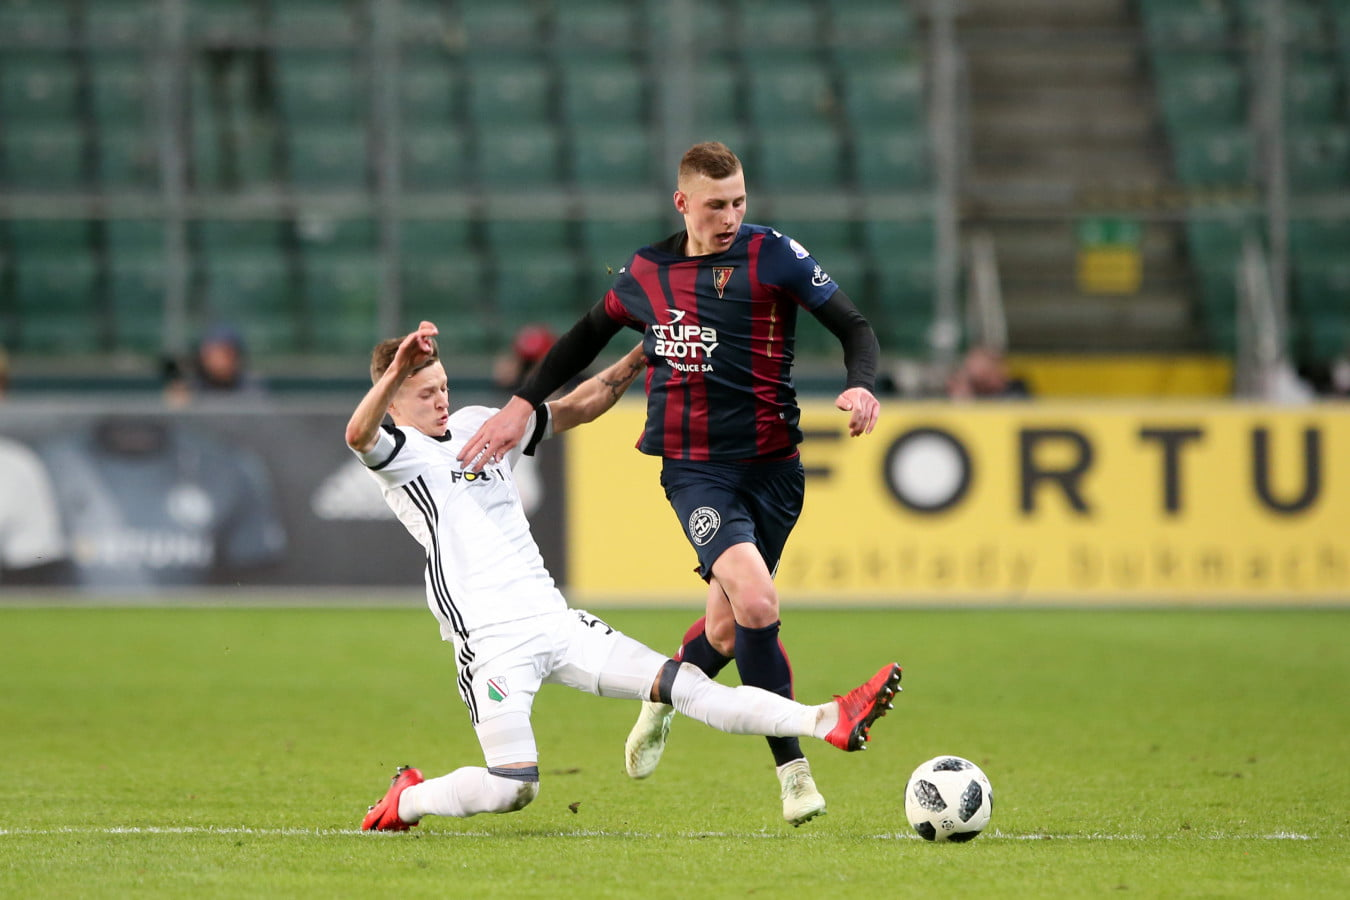 WARSZAWA 07.04.2018 MECZ 30. KOLEJKA LOTTO EKSTRAKLASA SEZON 2017/18 --- POLISH FOOTBALL TOP LEAGUE MATCH IN WARSAW: LEGIA WARSZAWA - POGON SZCZECIN 3:0 SEBASTIAN SZYMANSKI JAKUB PIOTROWSKI FOT. PIOTR KUCZA/ 400mm.pl